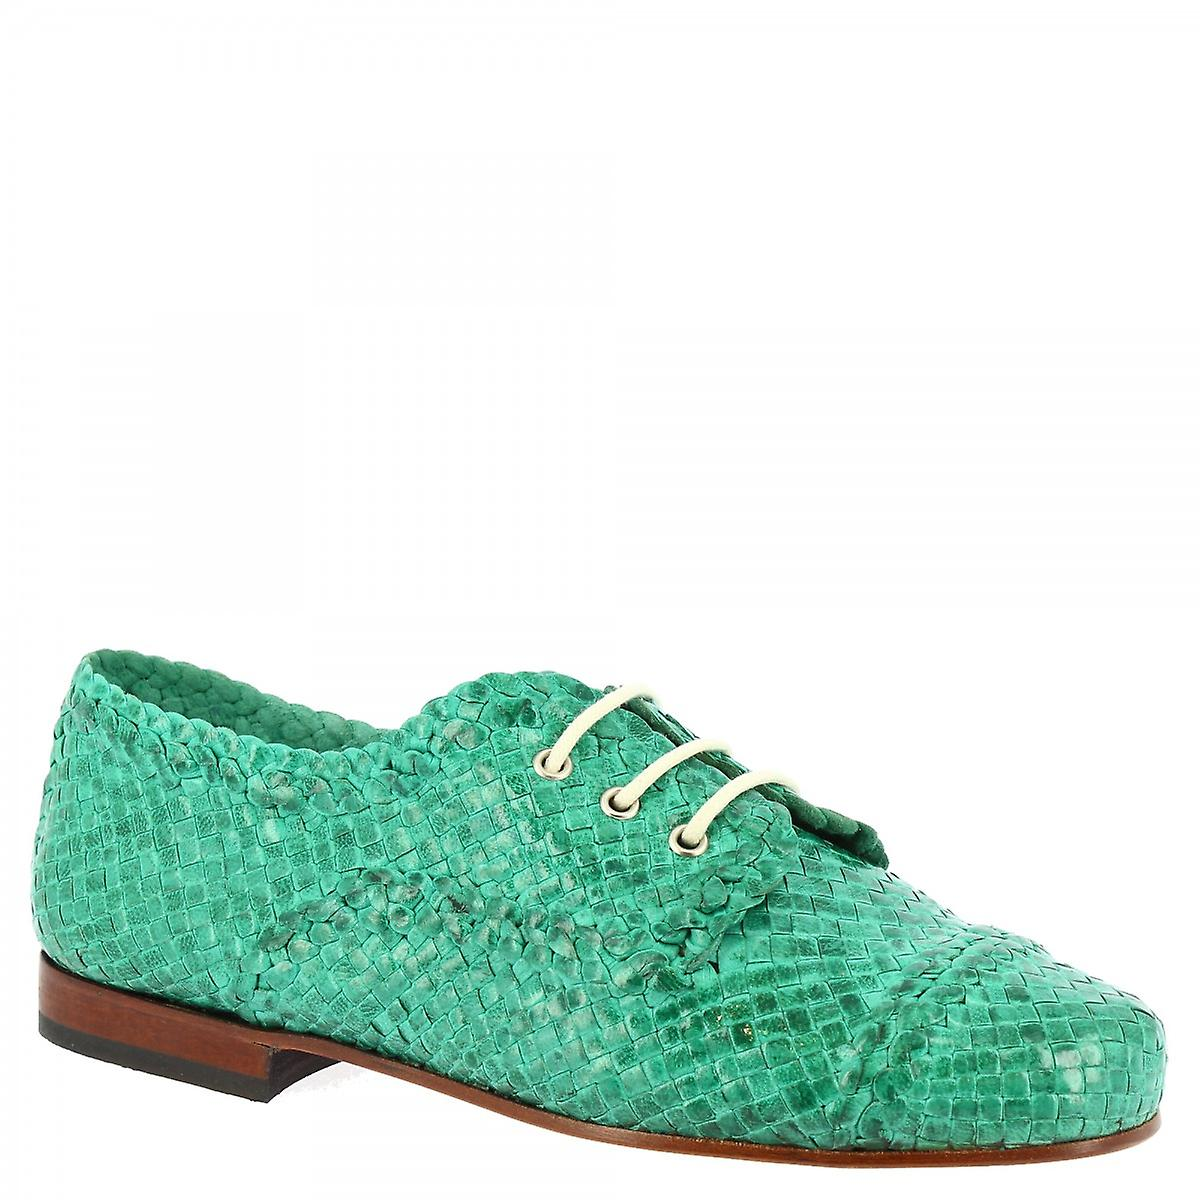 Leonardo Shoes Women's handmade lace-ups shoes green water woven calf leather aDSEW